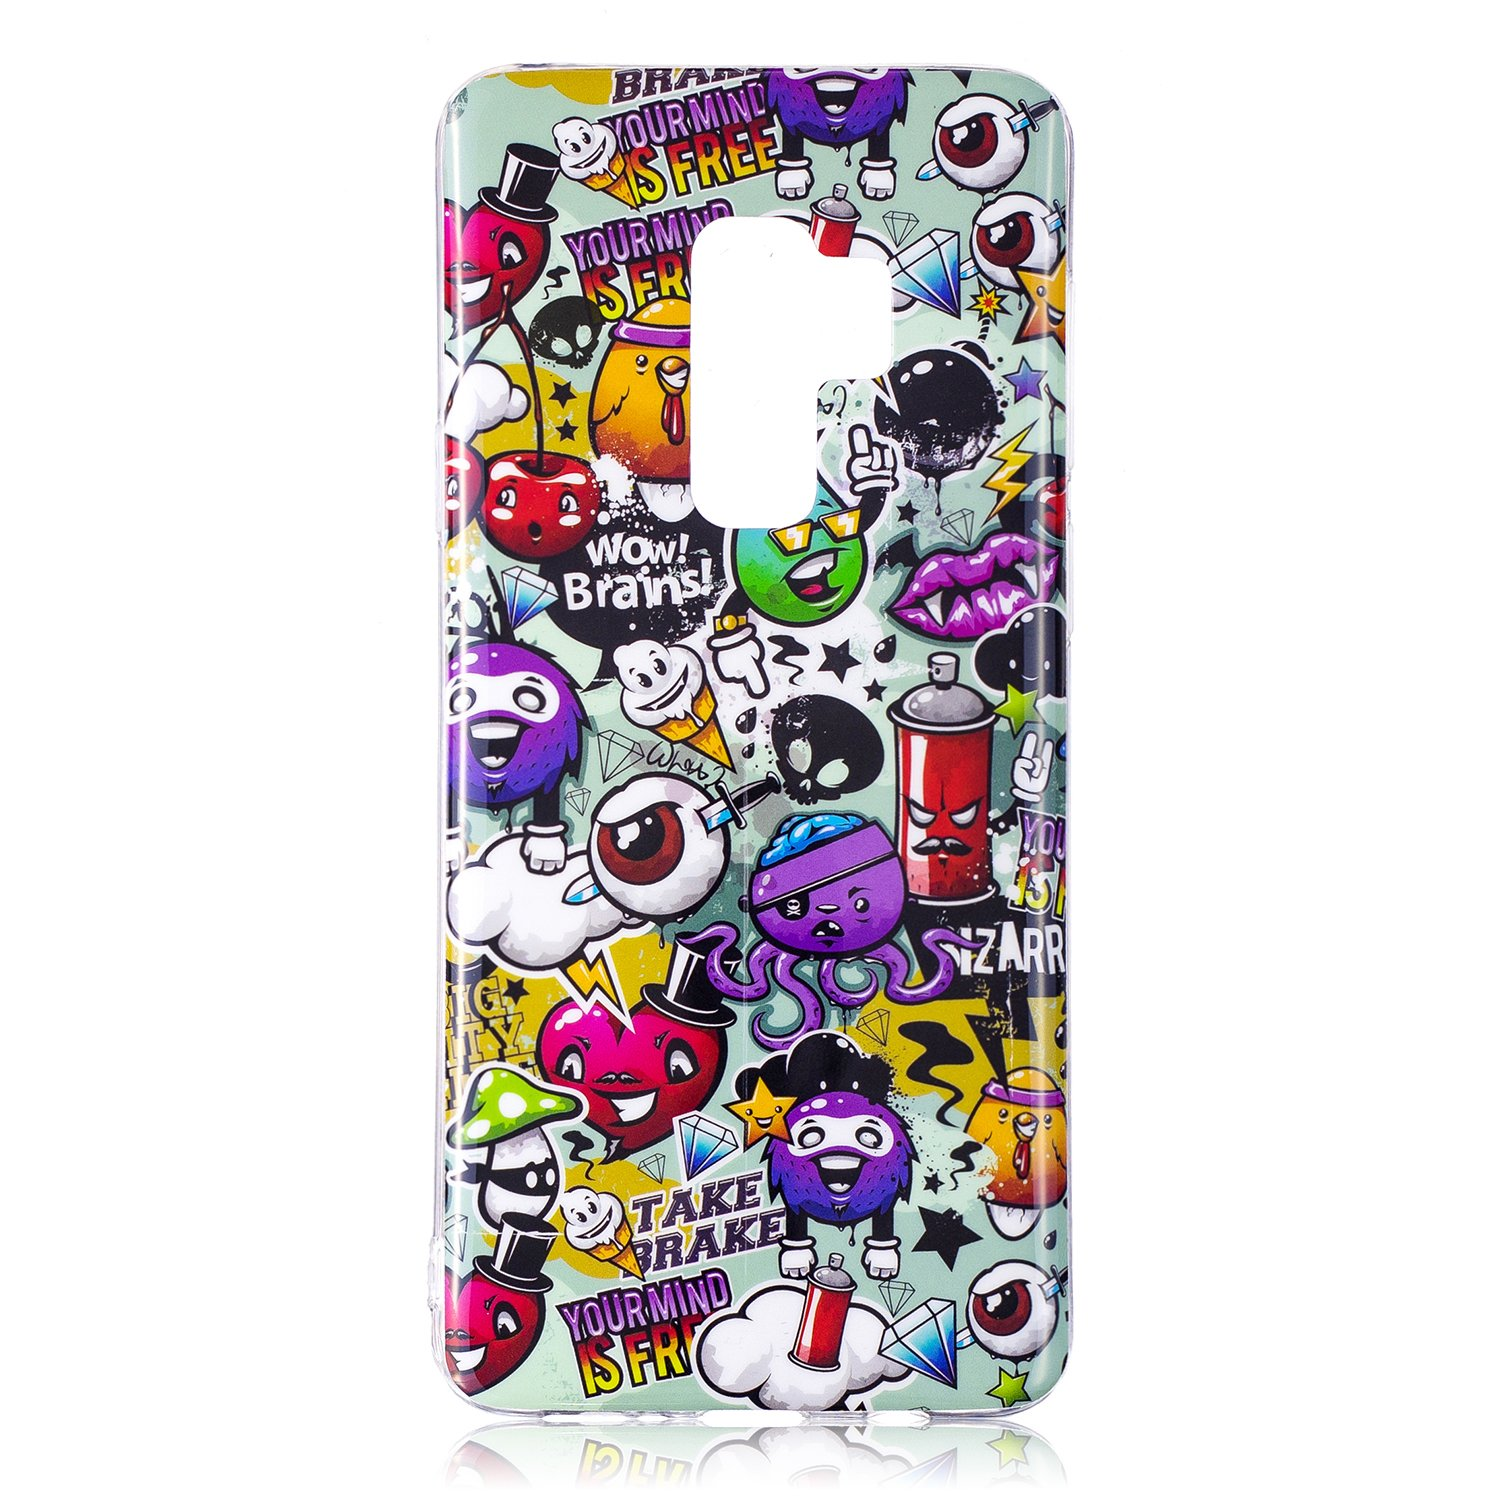 Galaxy S9 Case, For [S9 ], MerKuyom Durable Lightweight IMD [Slim-Fit] Flexible Gel Soft TPU Case Skin Cover For Samsung Galaxy S9 5.8-inch, W/Stylus (Cartoon Graffiti Pattern)